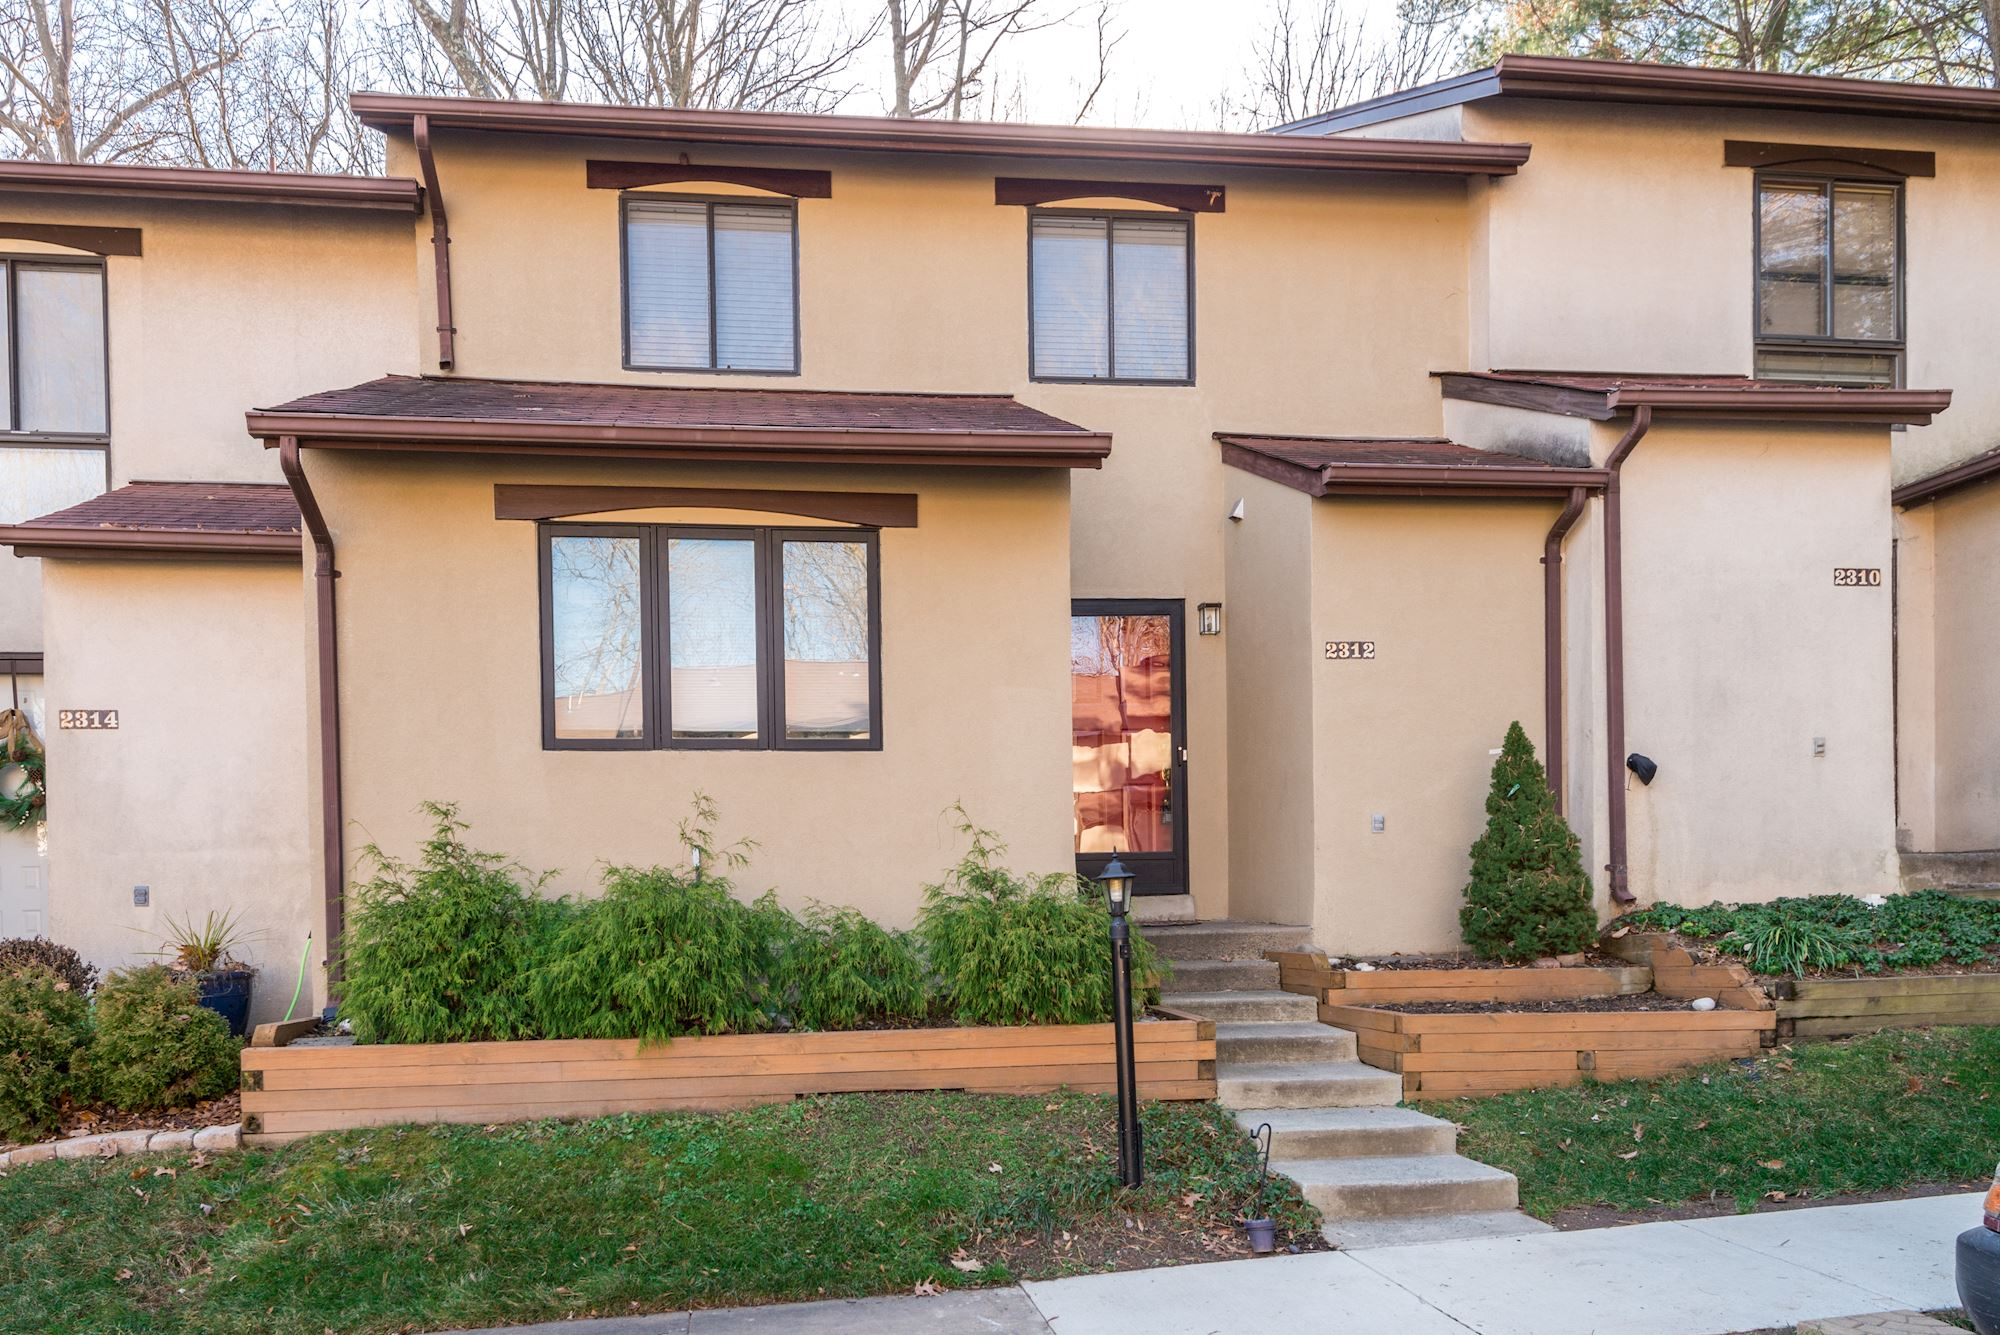 NEW LISTING: Reston, VA Rental With Spacious and Open Design